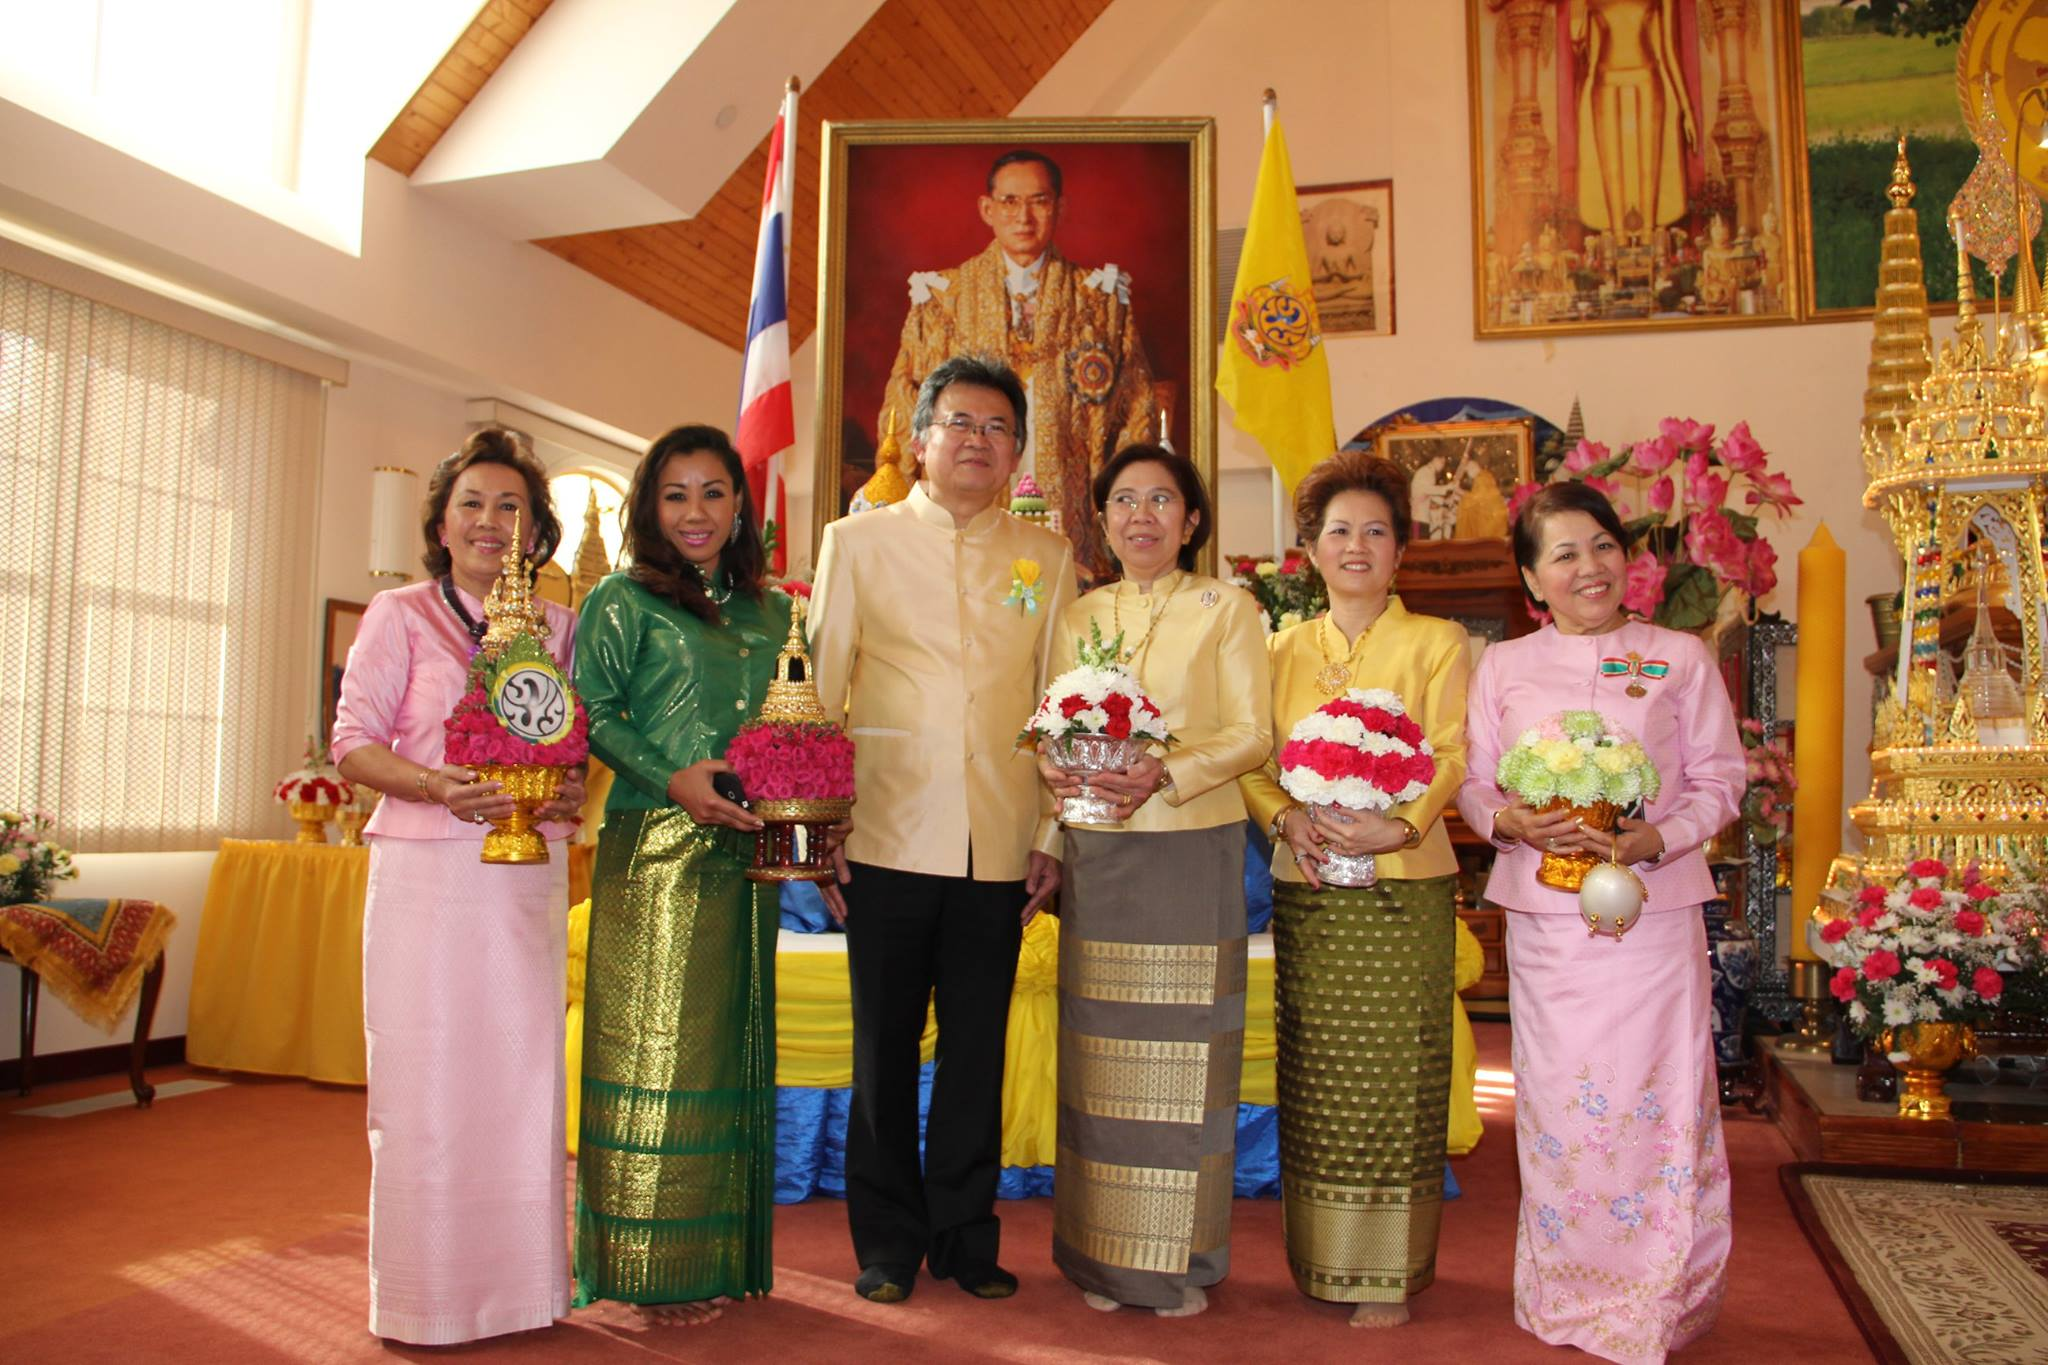 Thailand's King Blessing Ceremony